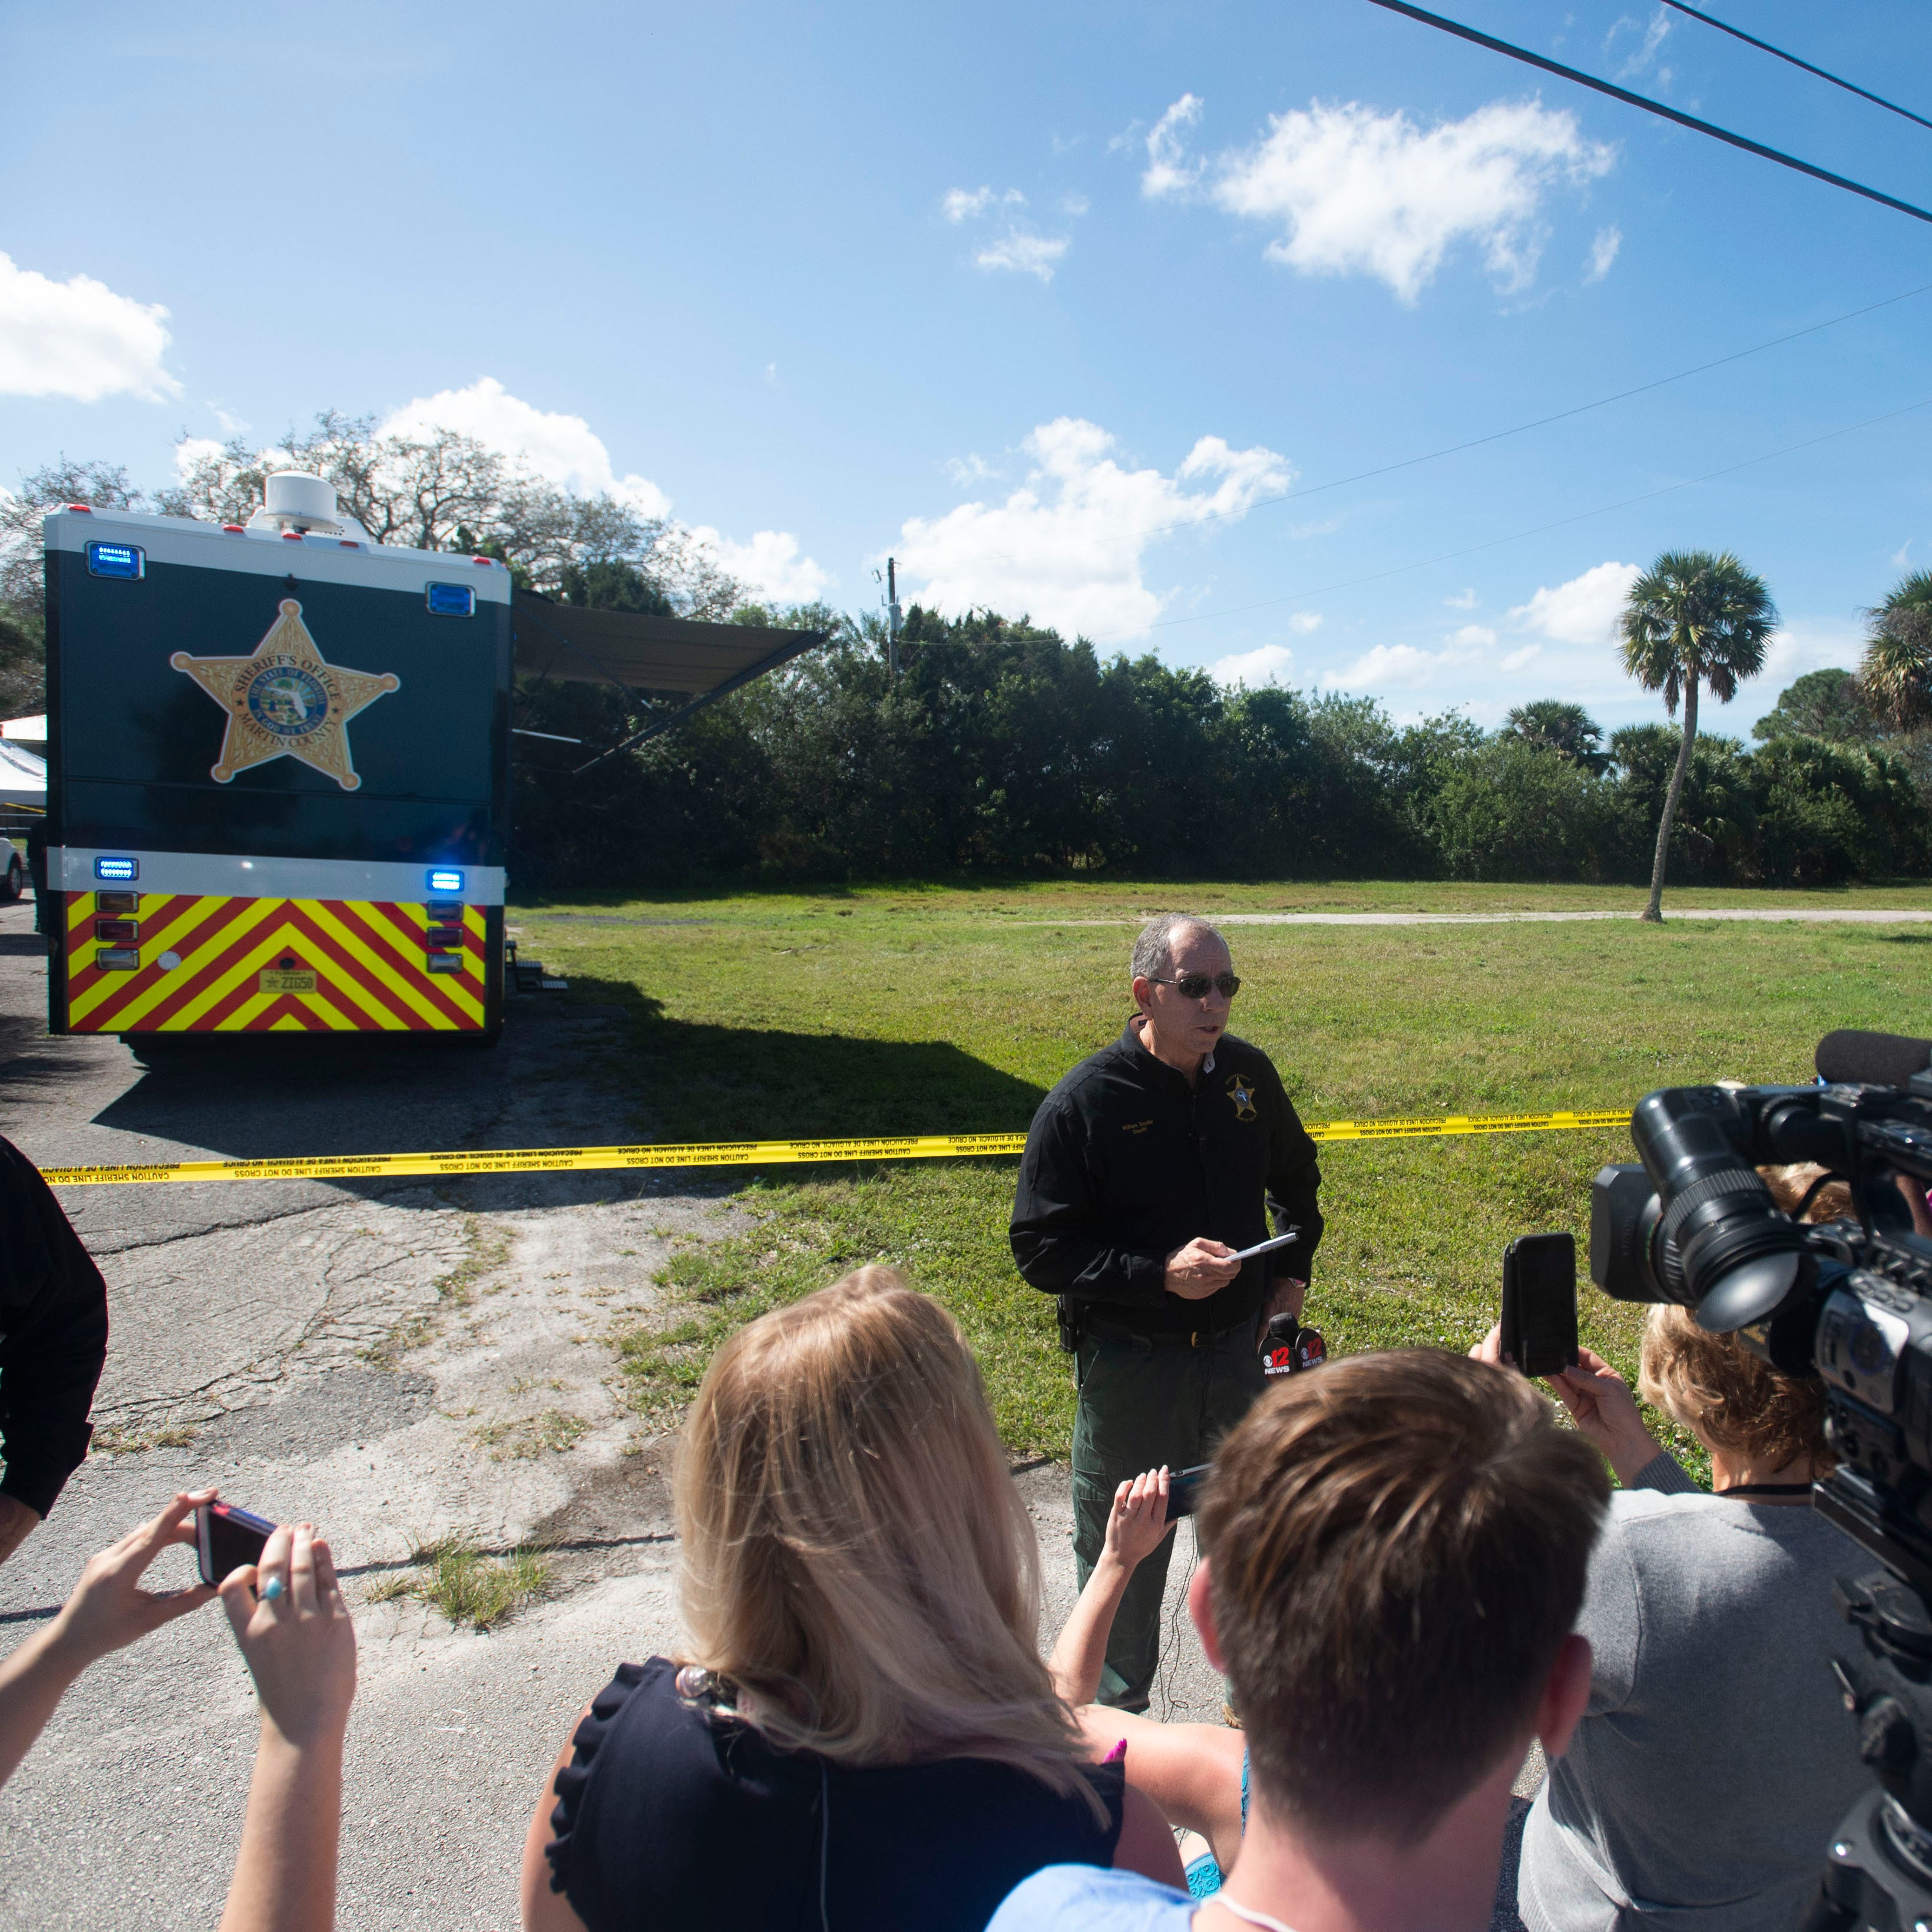 Body found in remote area in Hobe Sound could be homicide, Martin County sheriff says